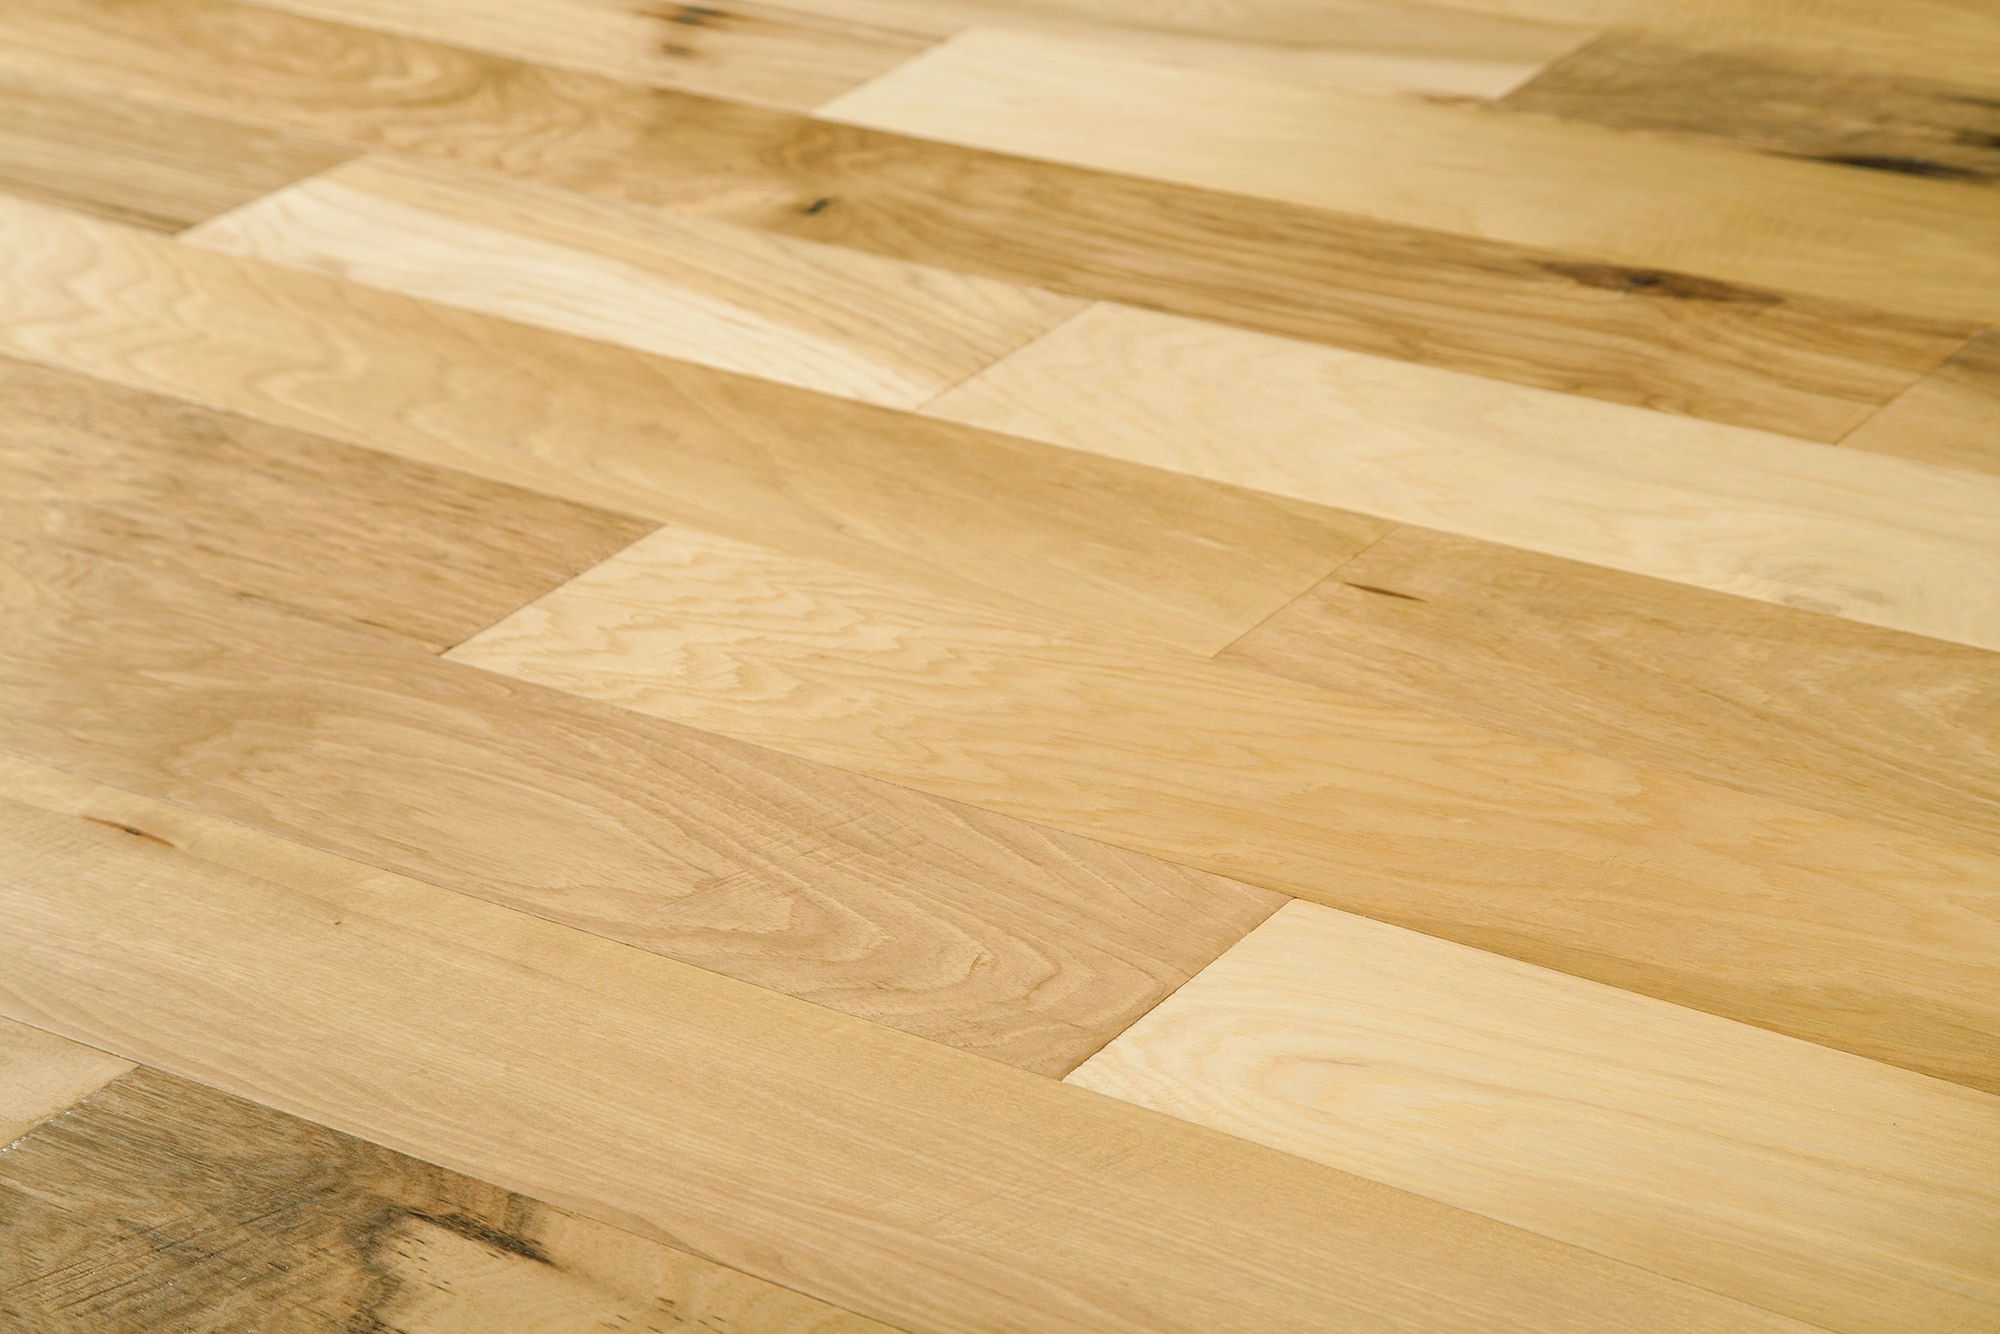 Top laminate flooring brands alyssamyers for Laminate flooring brands